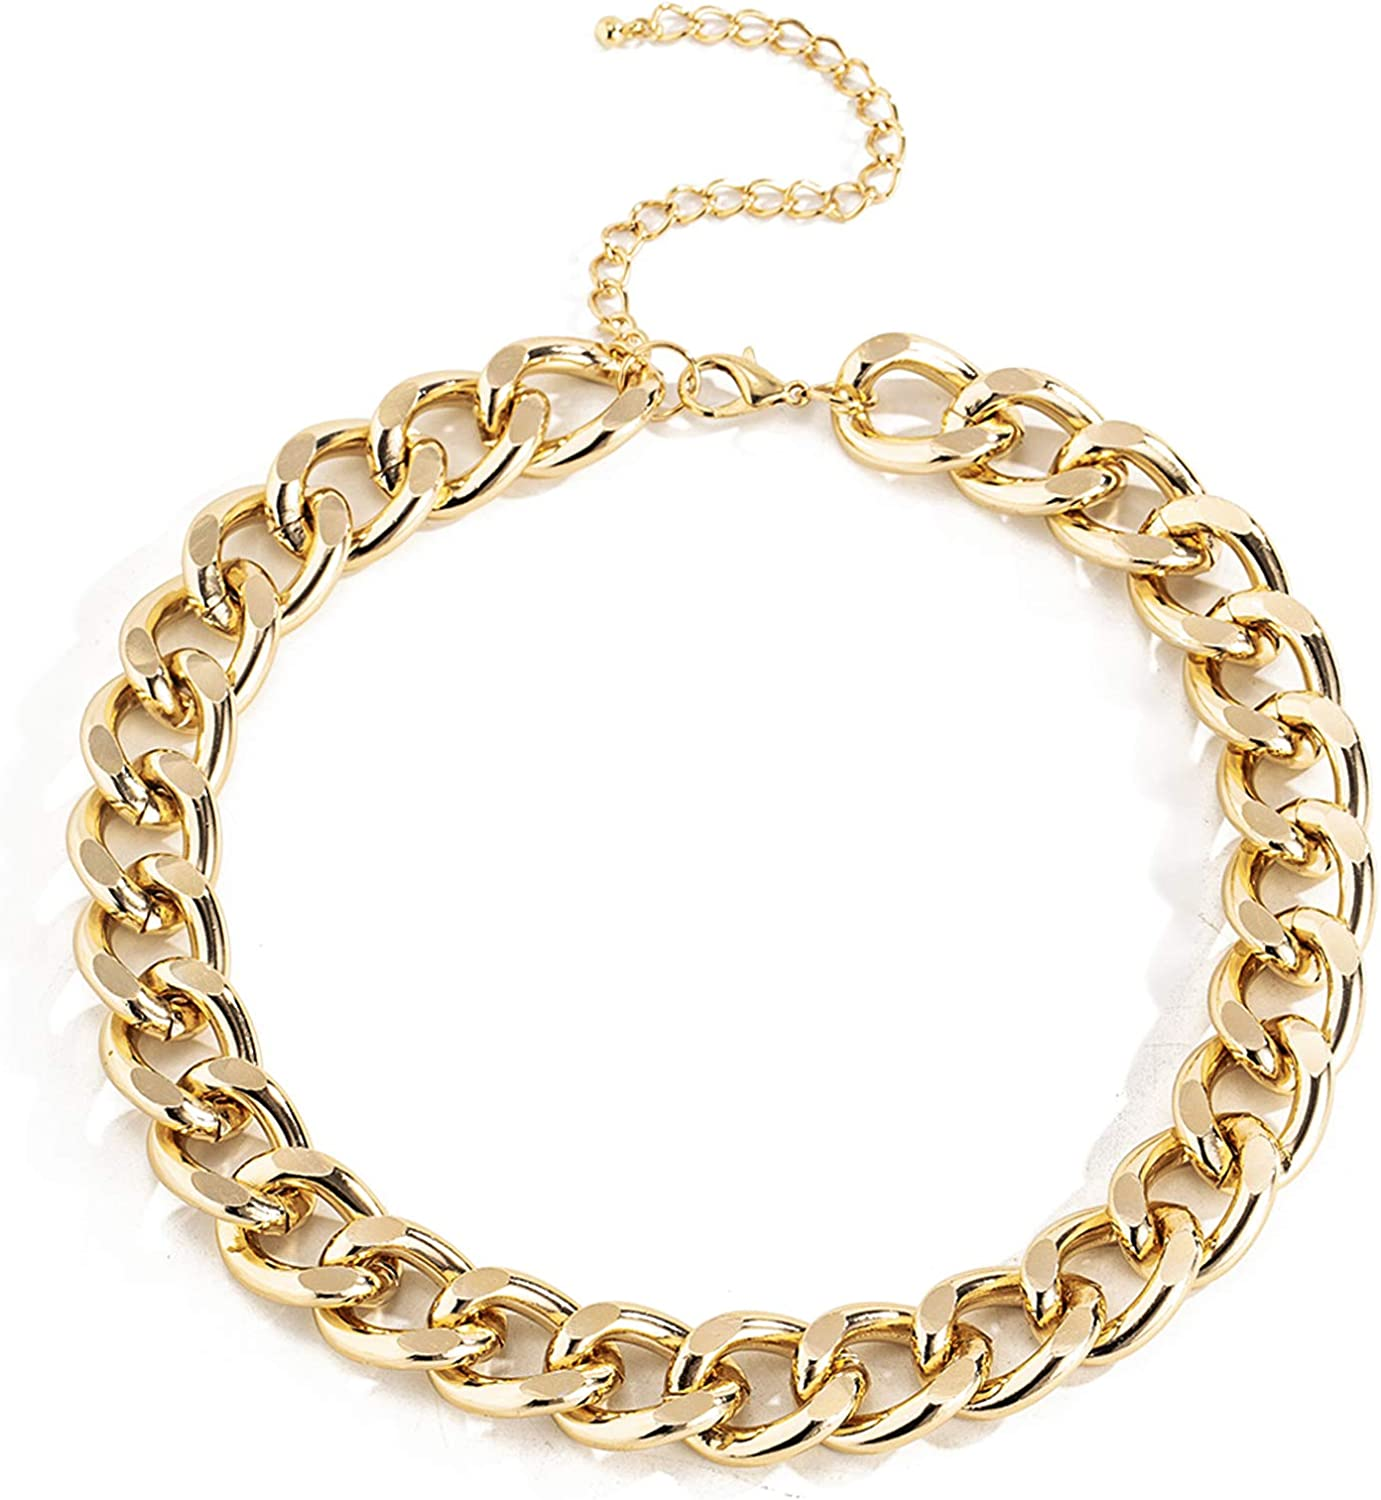 Ingemark Cuban Chunky Link Chain Choker Unisex Punk Style Thick Wide Necklace Jewelry